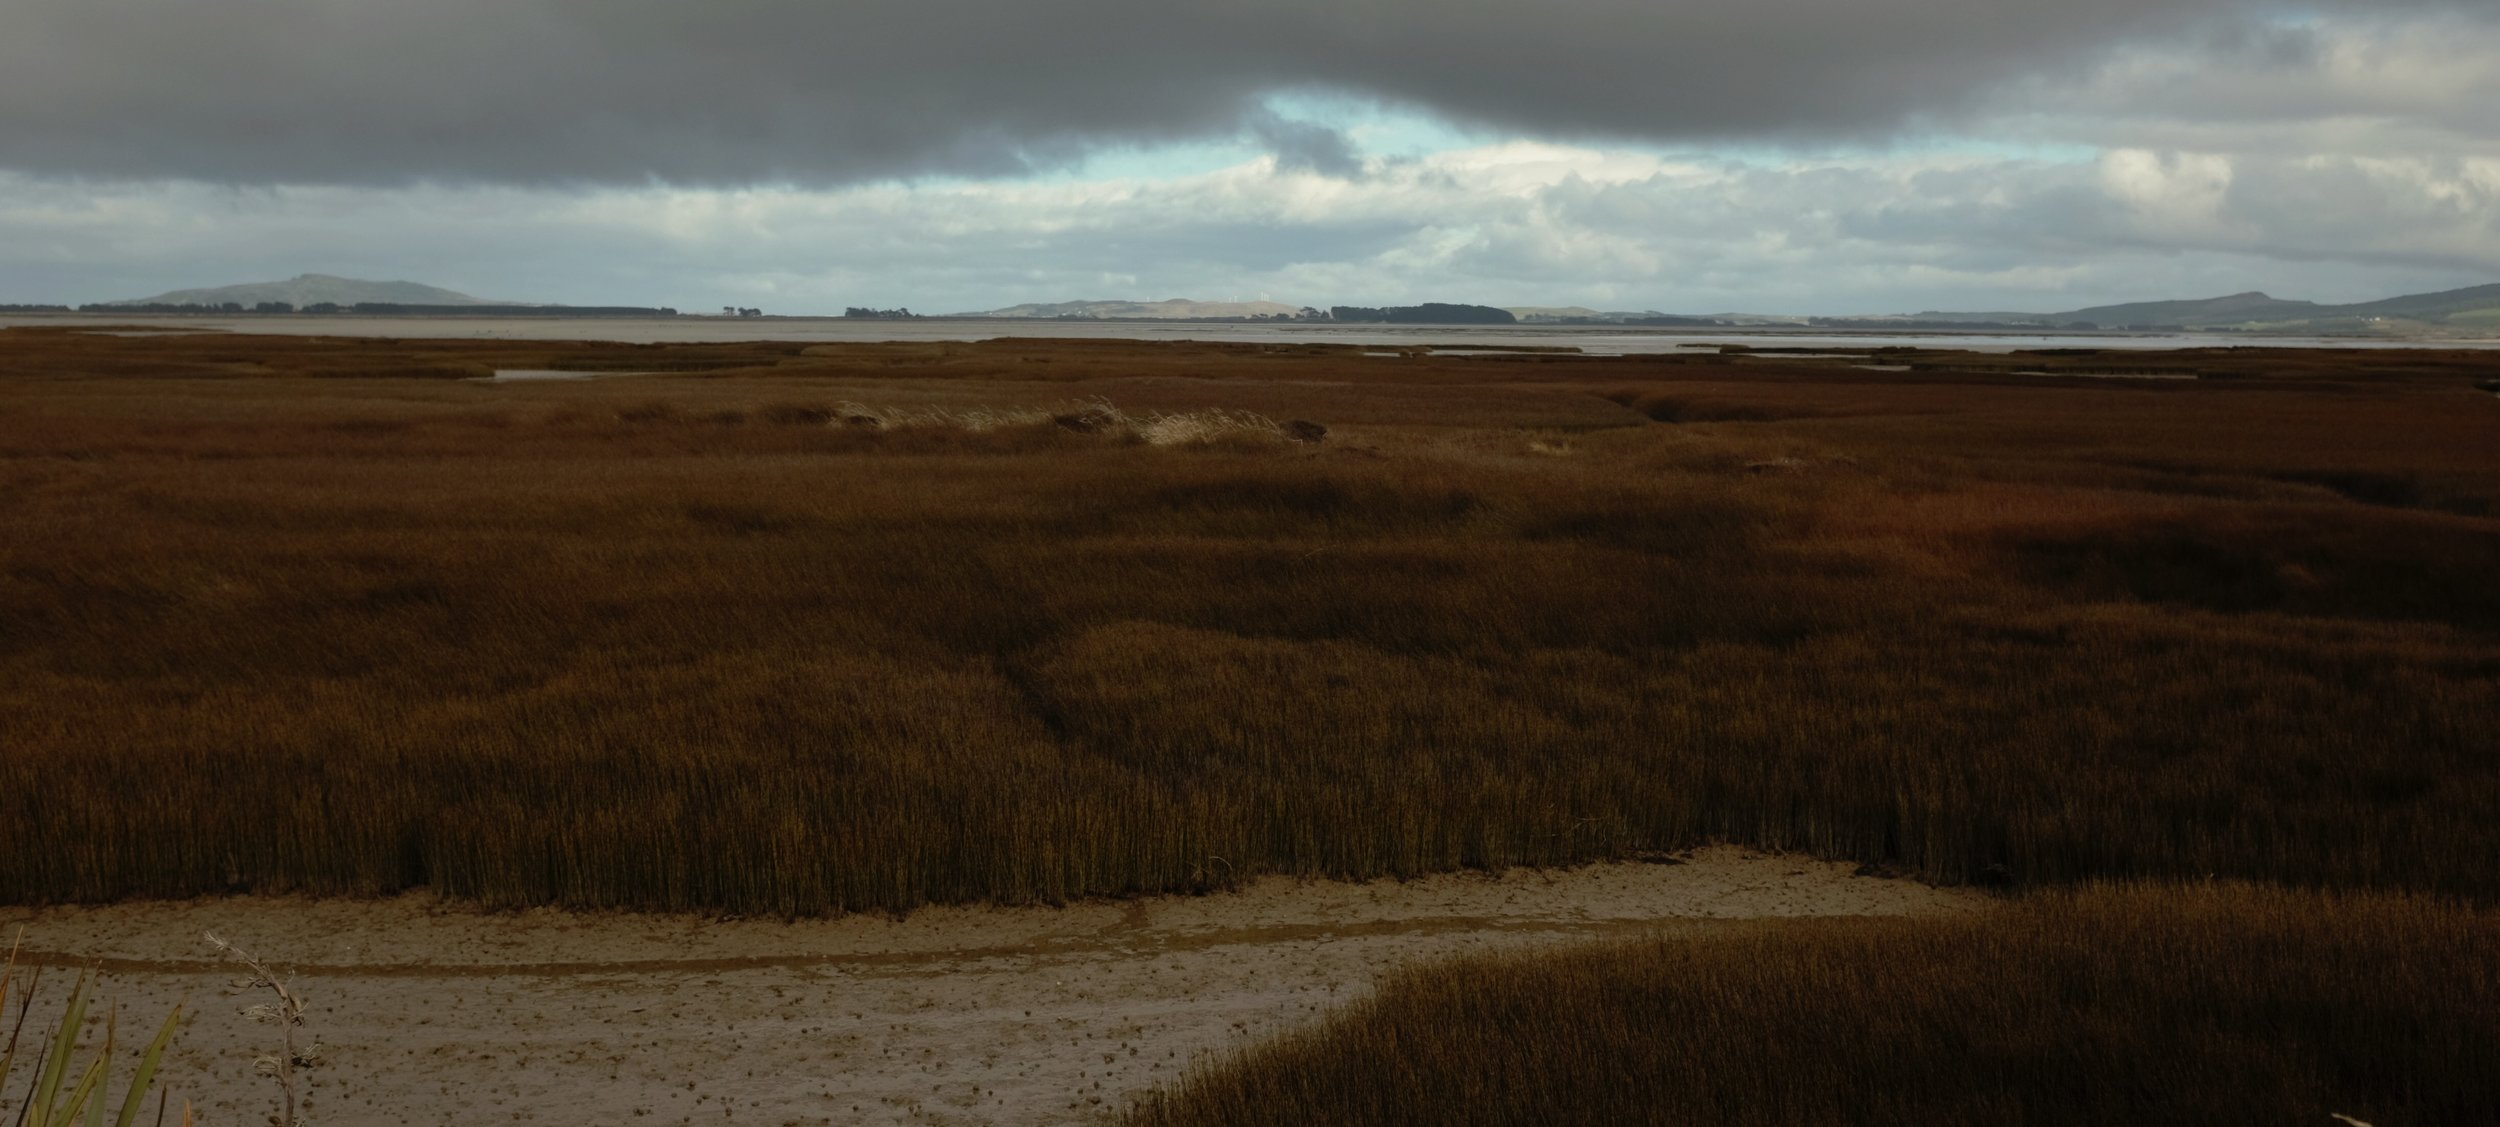 The marshes south of Invercargill, and (maybe?) Bluff looming in the lefthand distance.